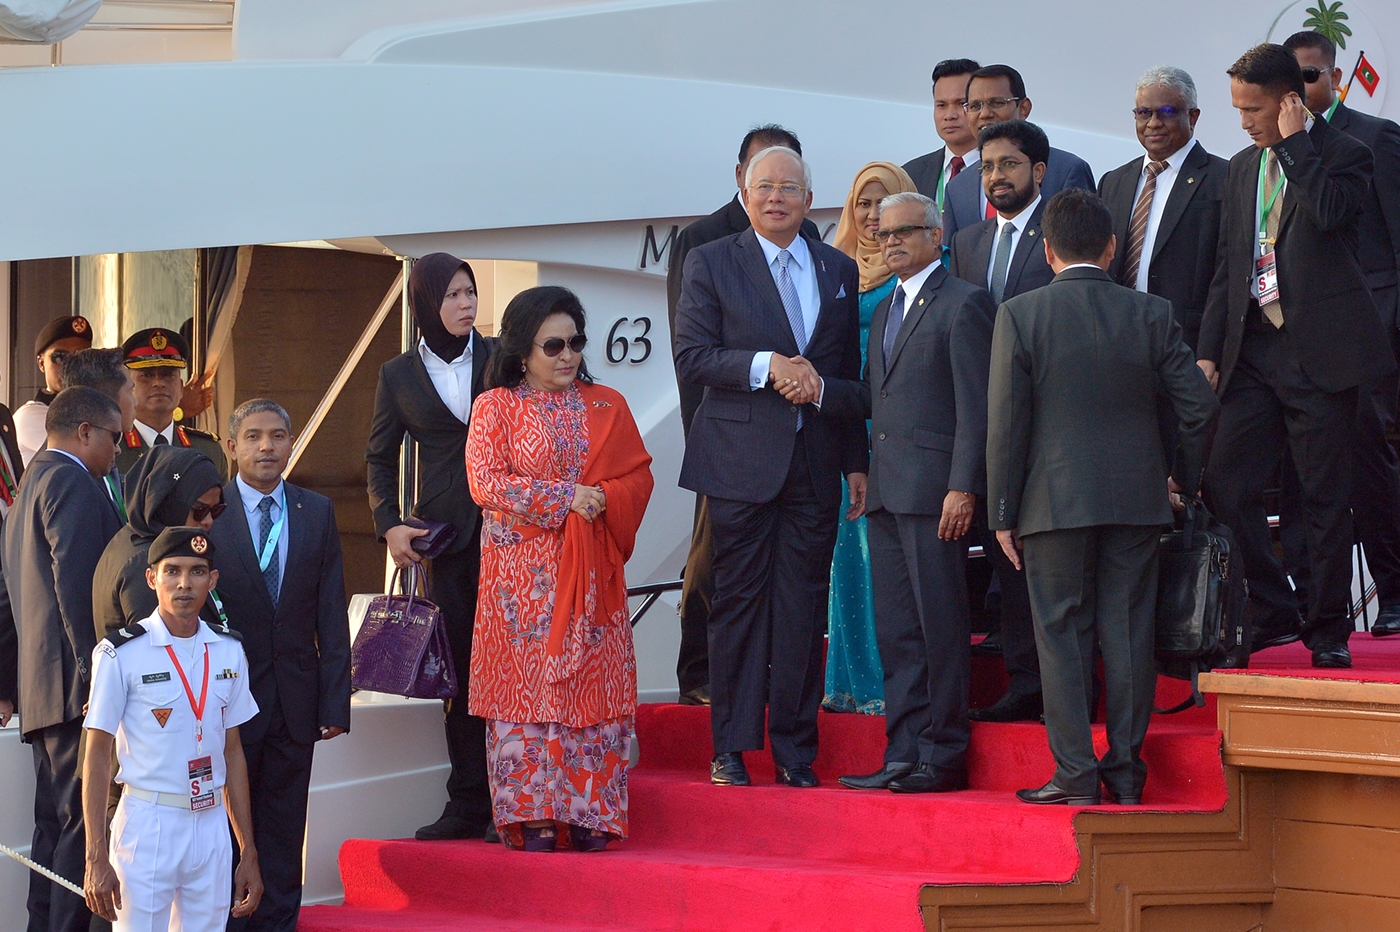 Prime Minister and First Lady of Malaysia arrive in the